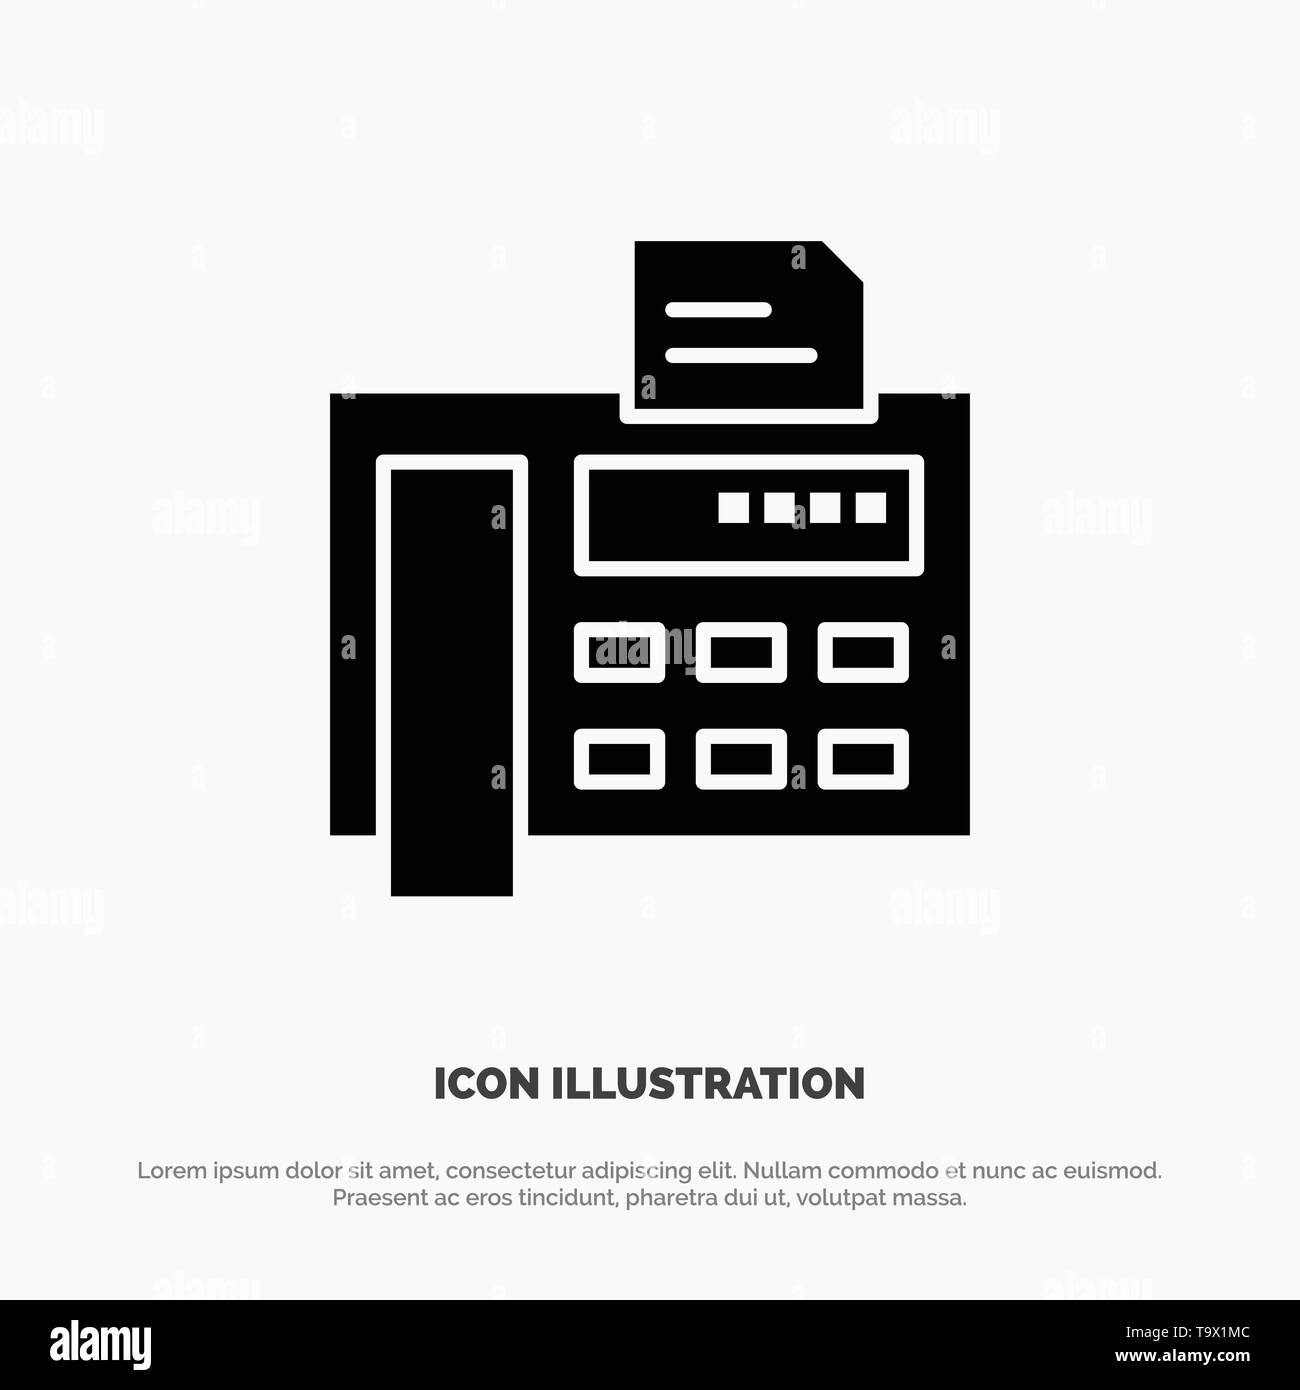 Fax, Phone, Typewriter, Fax Machine solid Glyph Icon vector - Stock Image